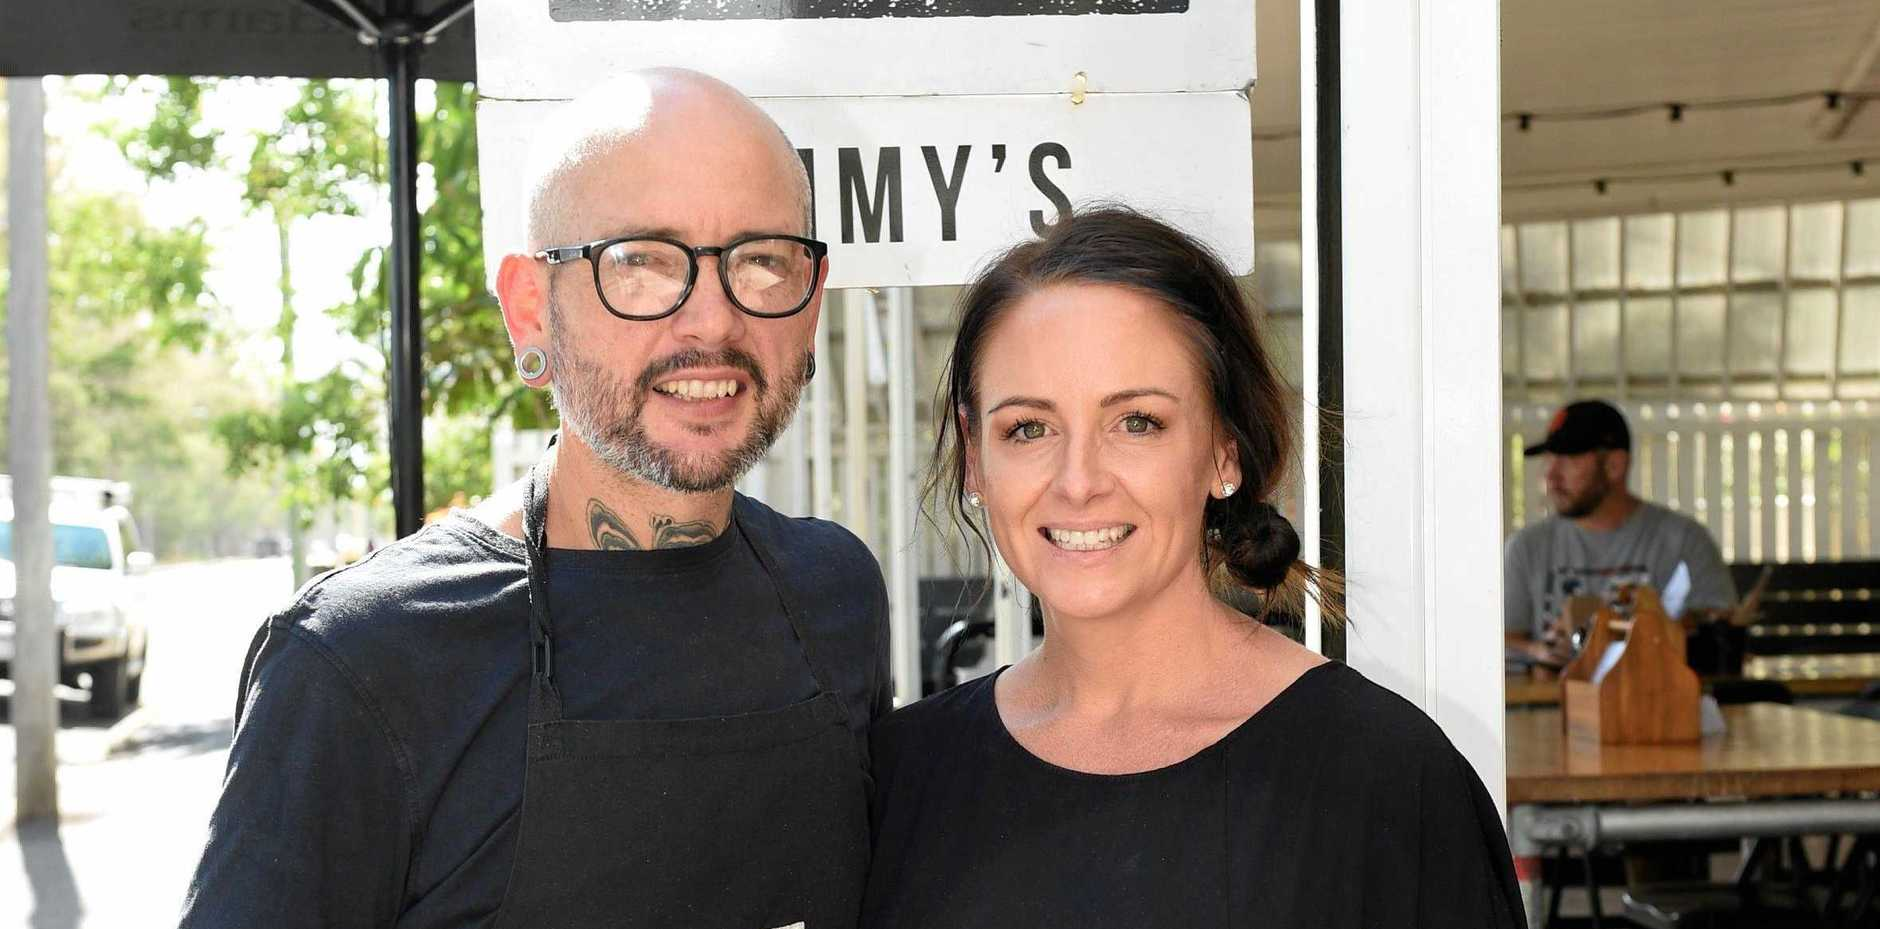 MKR's 2013 winners Dan and Steph Mulheron will return to the show which kick started their food dreams.